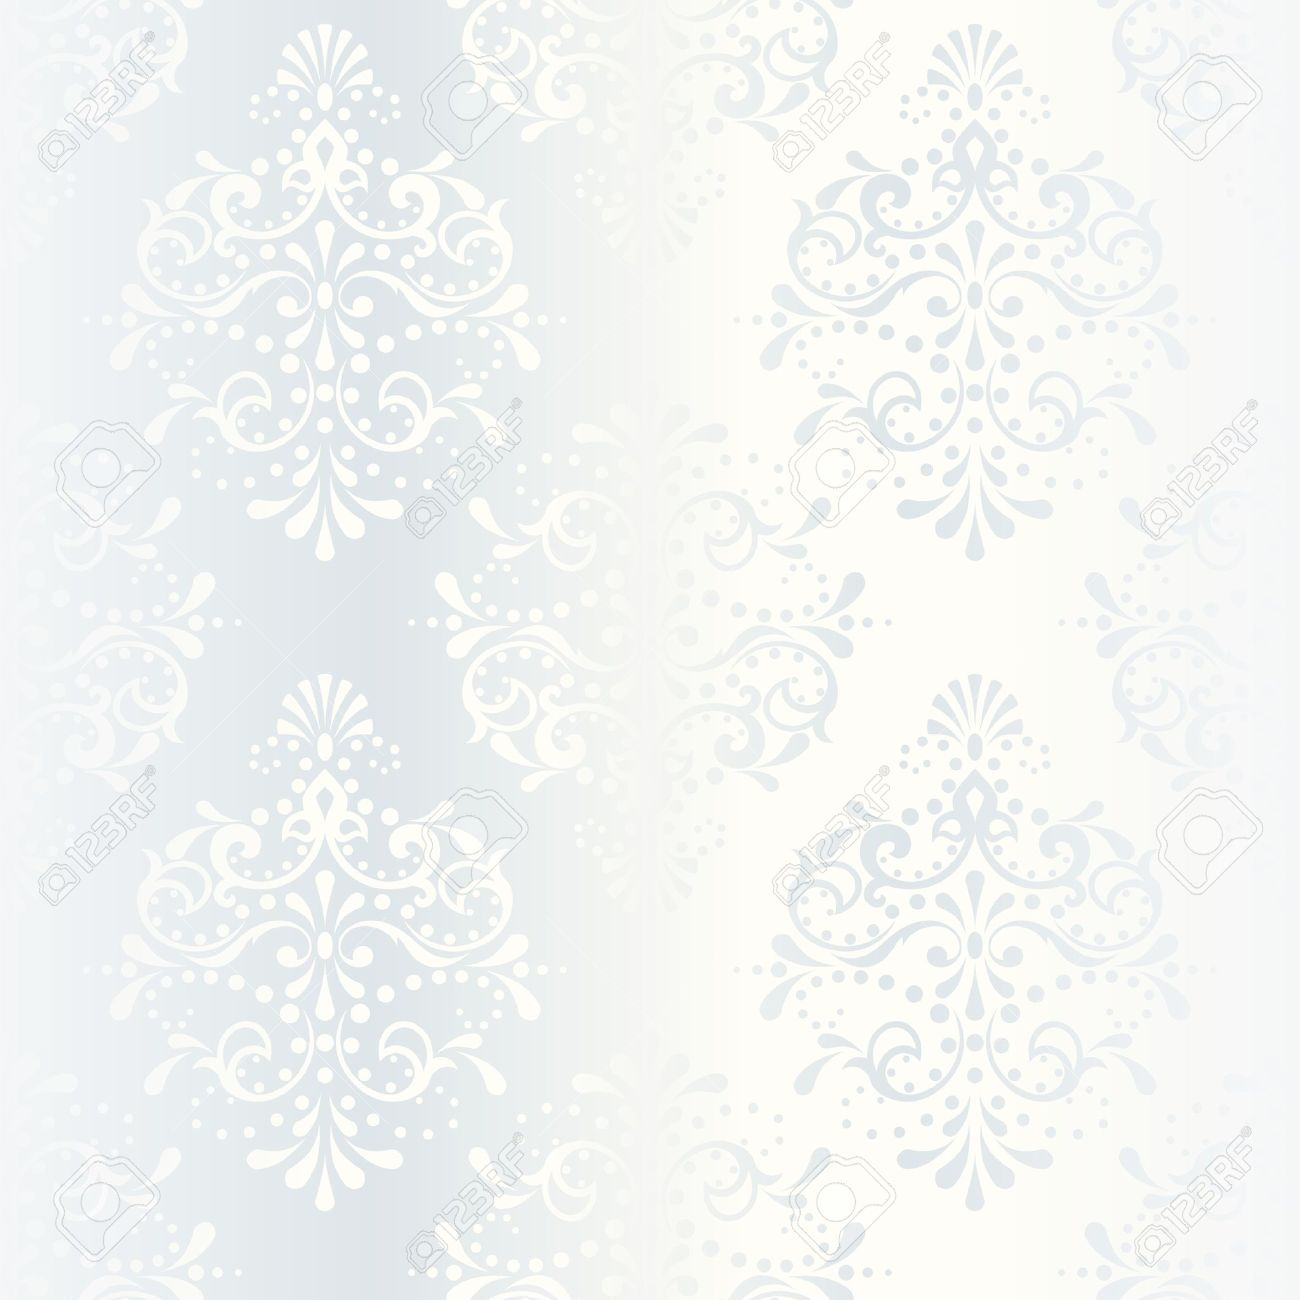 elegant white seamless pattern, prefect for wedding designs. The tiles can be combined seamlessly. Graphics are grouped and in several layers for easy editing. The file can be scaled to any size. Stock Vector - 5153660